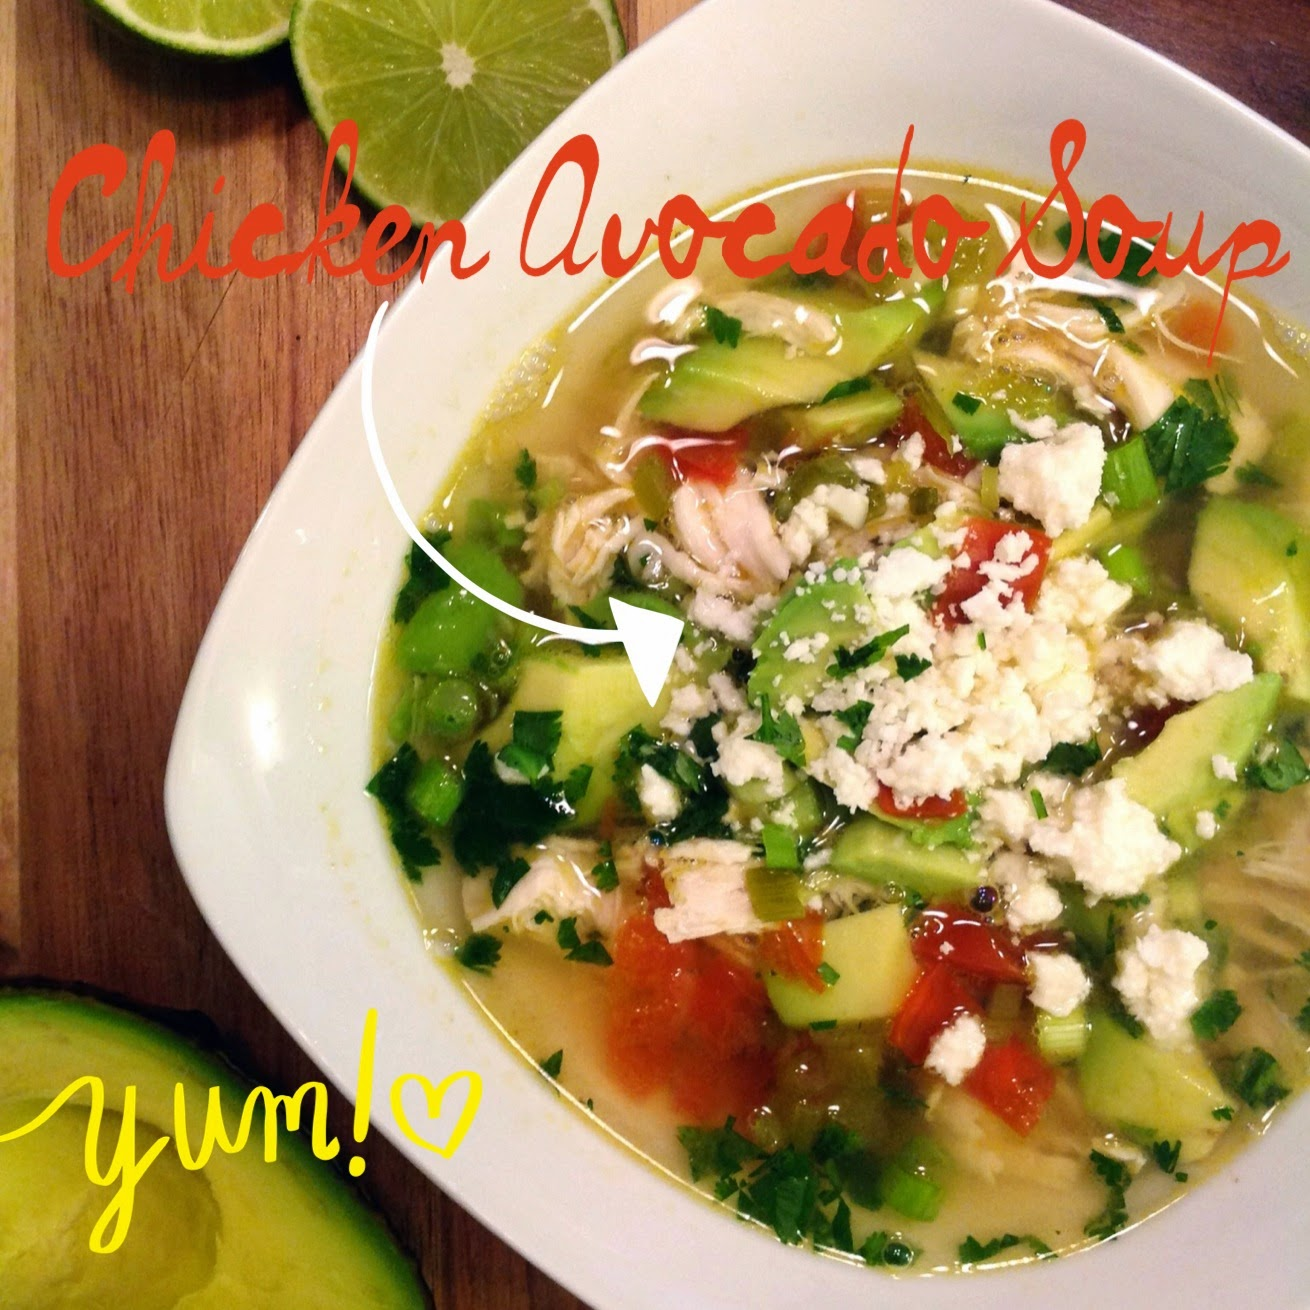 Light Soup with Shredded Chicken, Avocado, Lime and Cilantro.